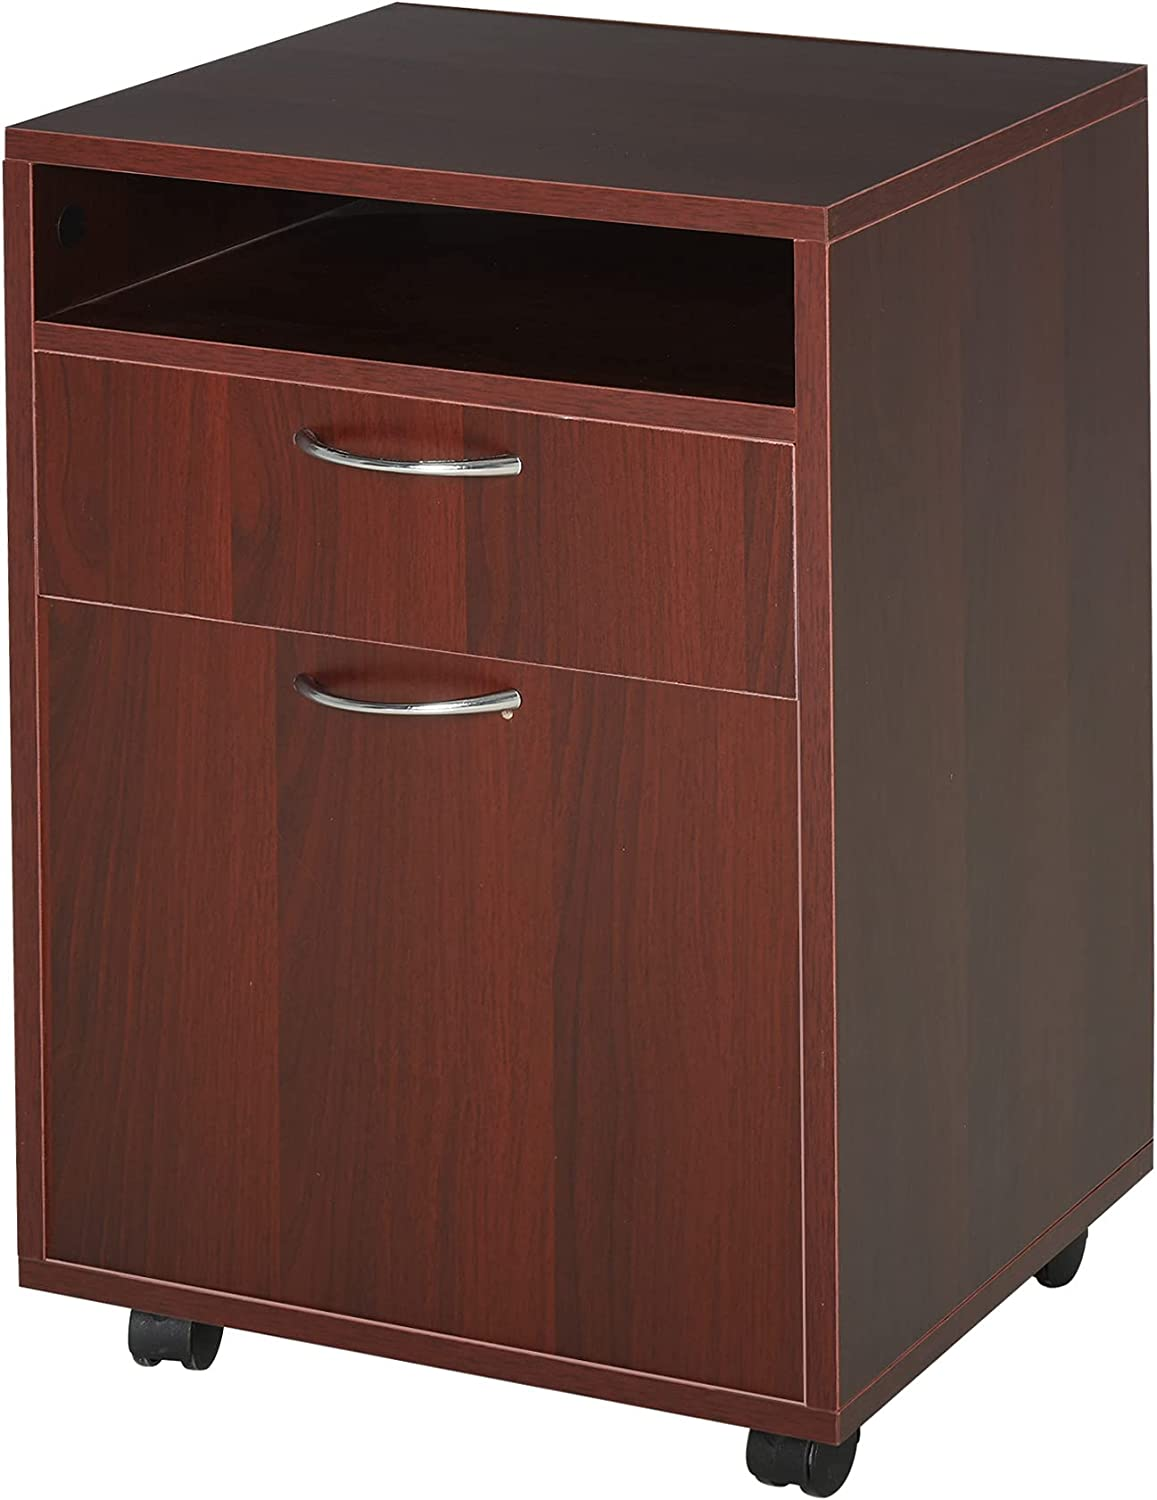 HOMCOM Mobile Genuine Free Shipping Max 63% OFF File Cabinet Organizer Home Organize Office Filing